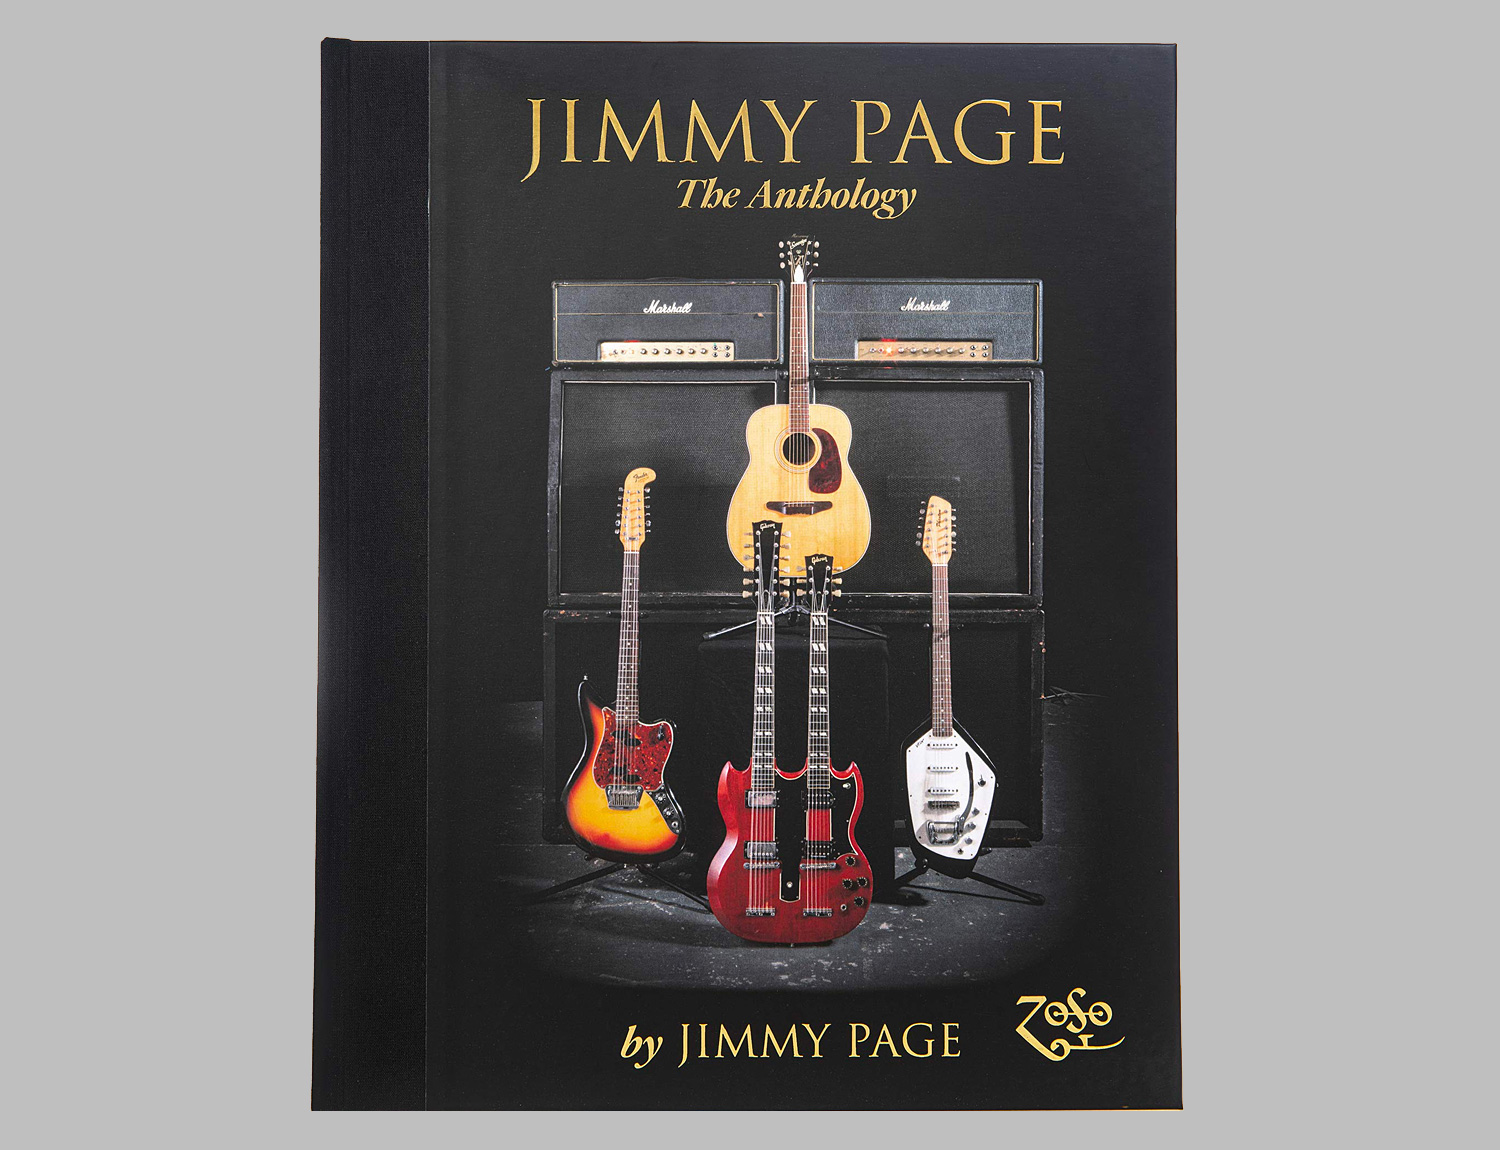 Jimmy Page: The Anthology at werd.com